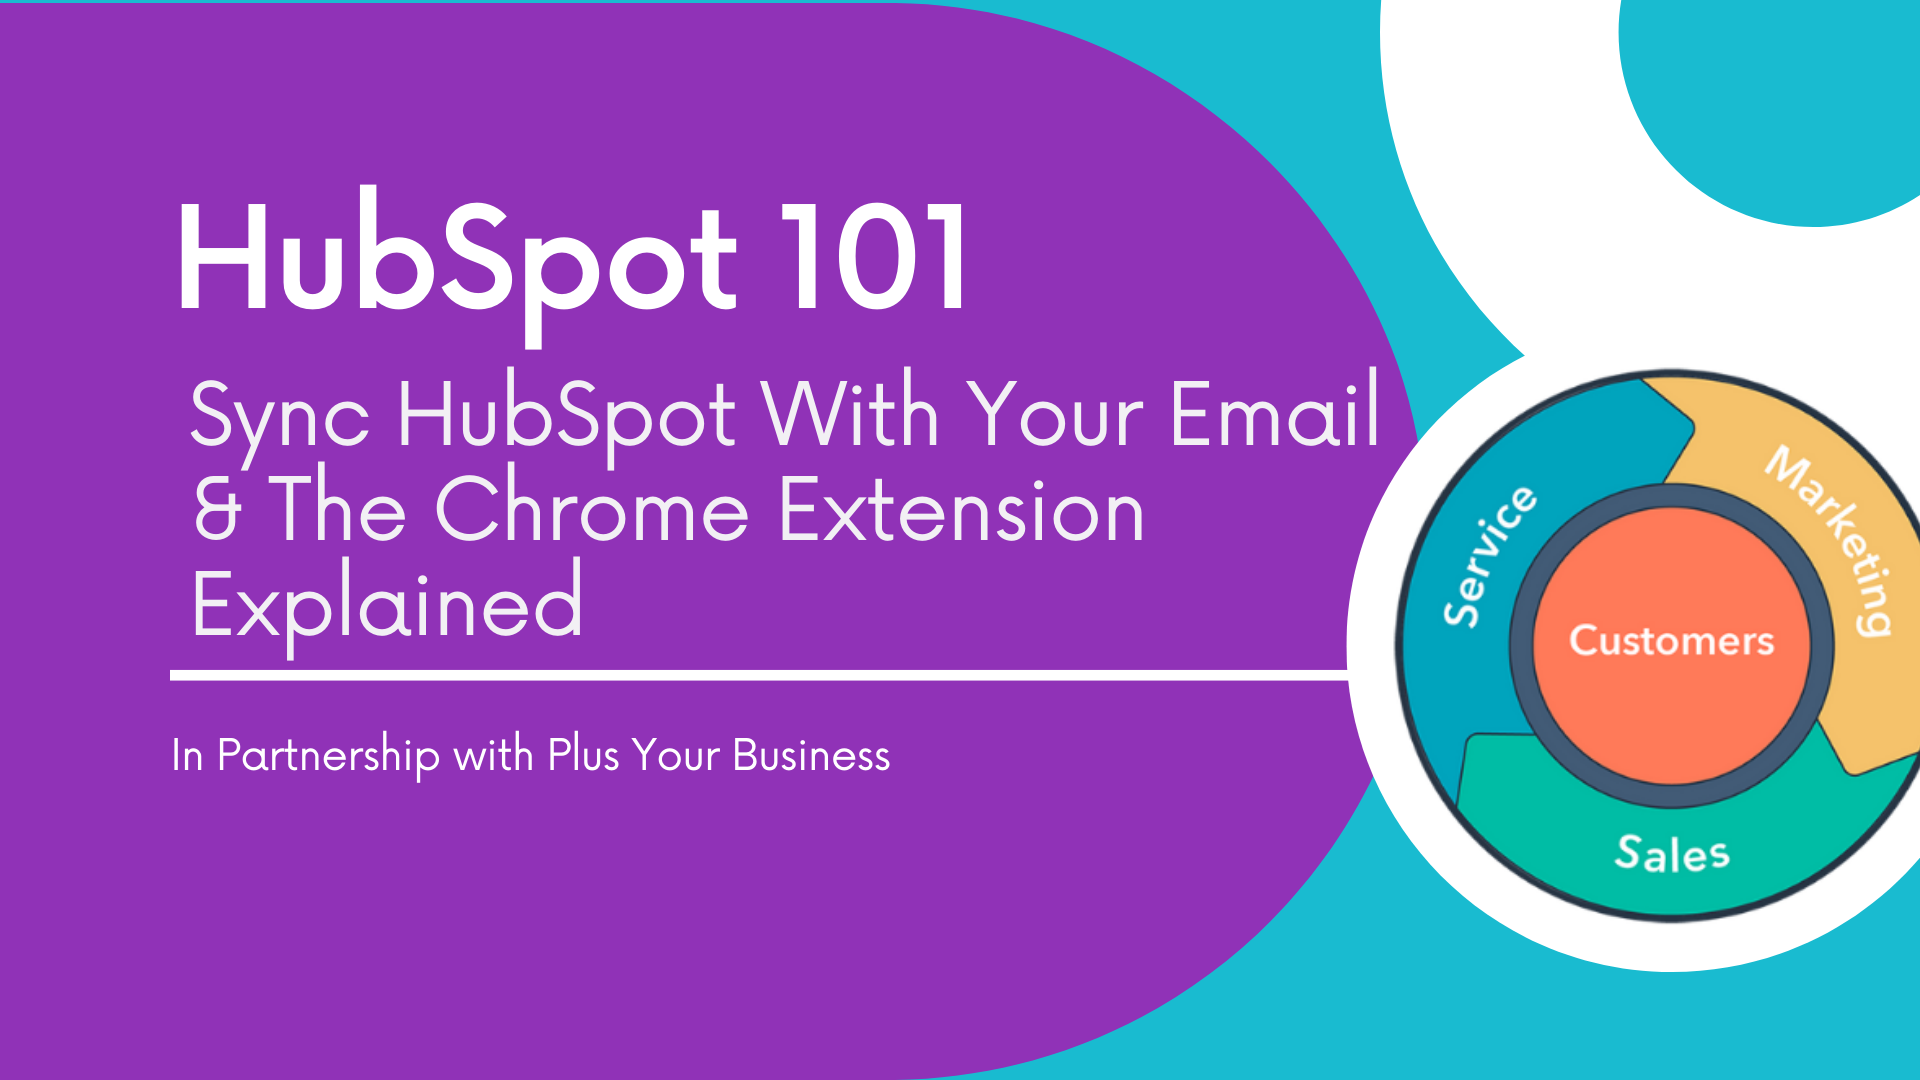 HubSpot 101: Sync HubSpot With Your Email & The Chrome Extension Explained